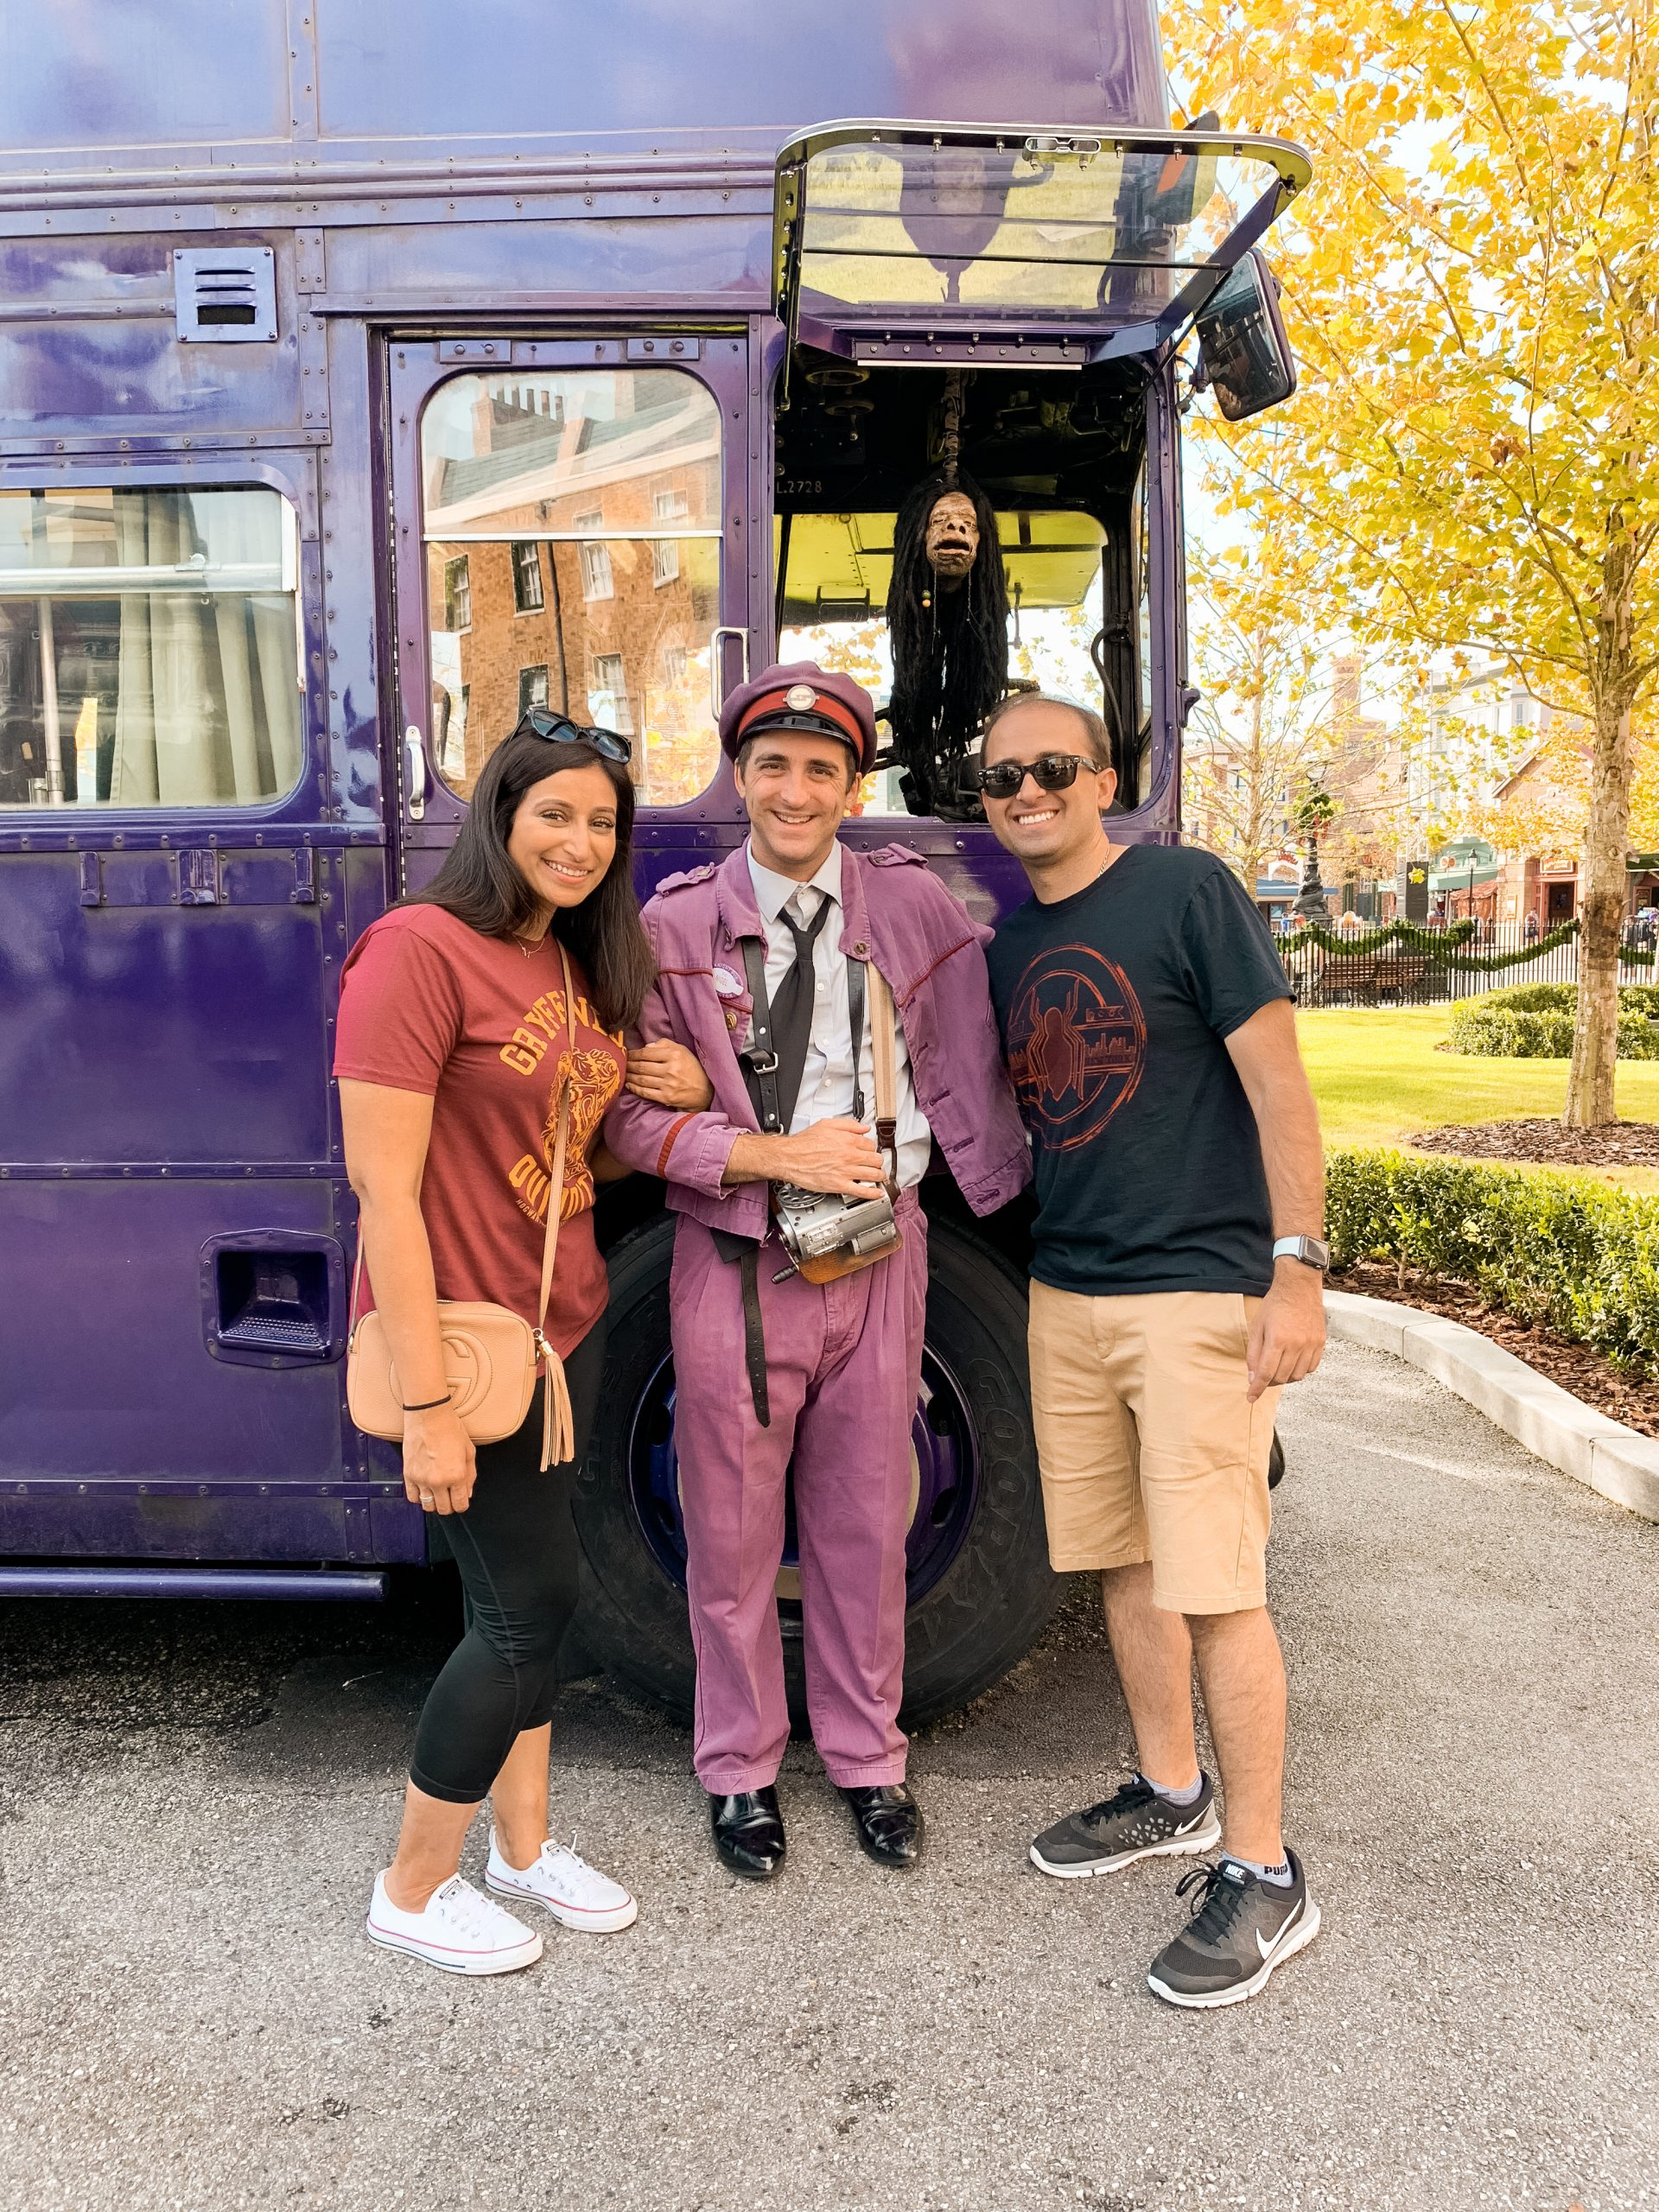 Picture of me and hubby with Stan of the Nightbus at Harry Potter World Universal Studios Orlando